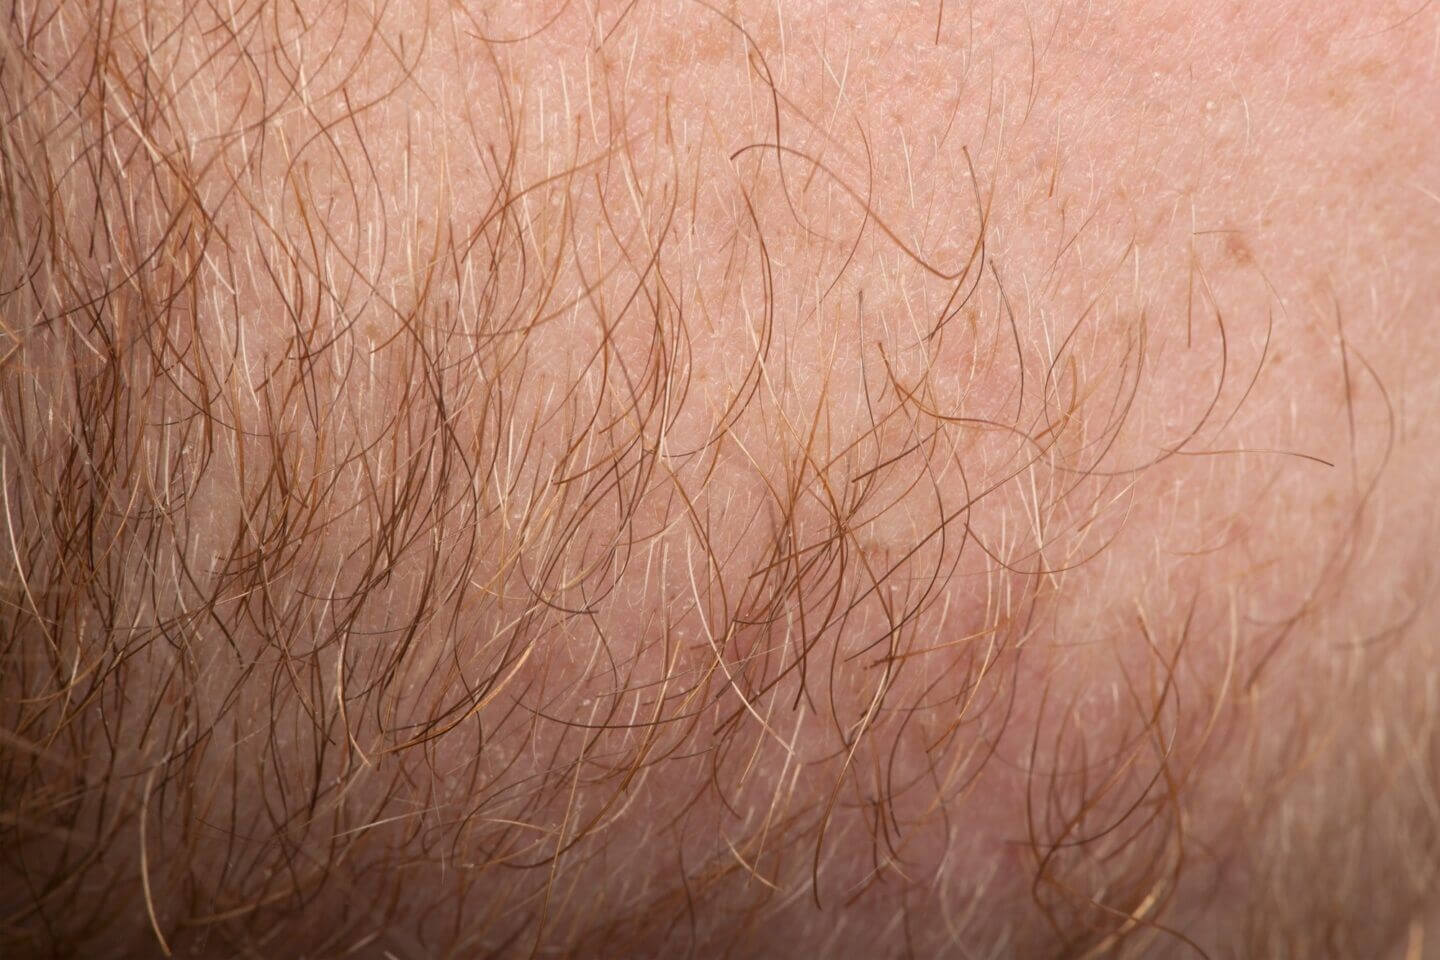 Close-up-human skin-with-hair